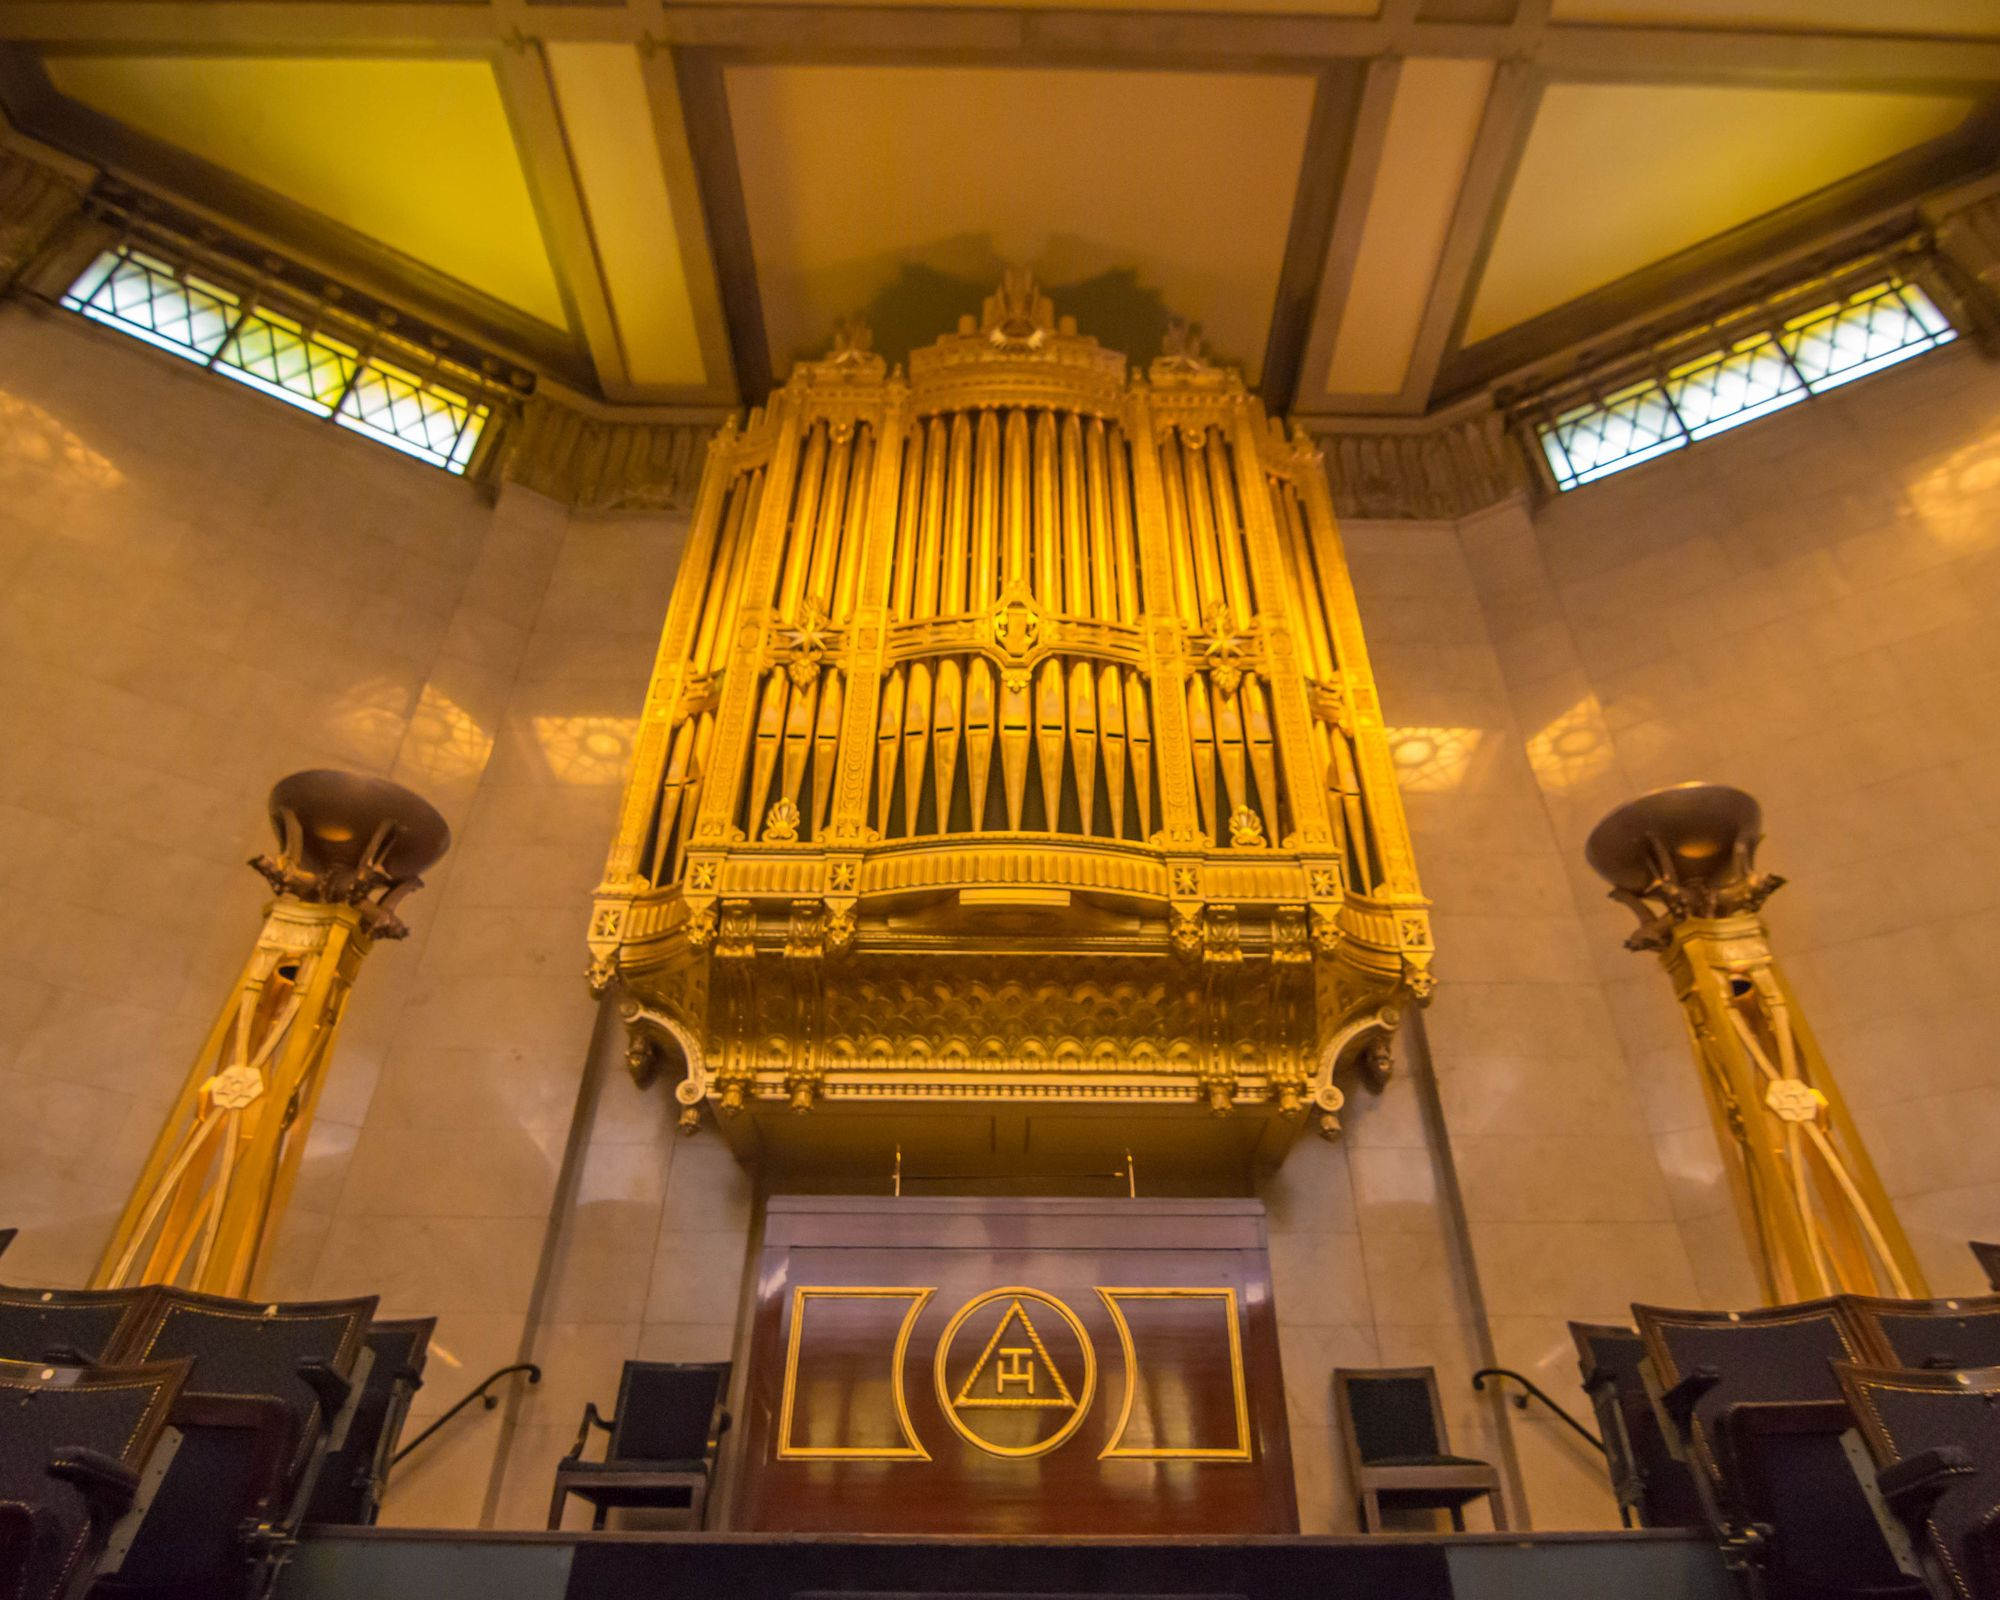 Enjoy Freemason's organ concert from your own home